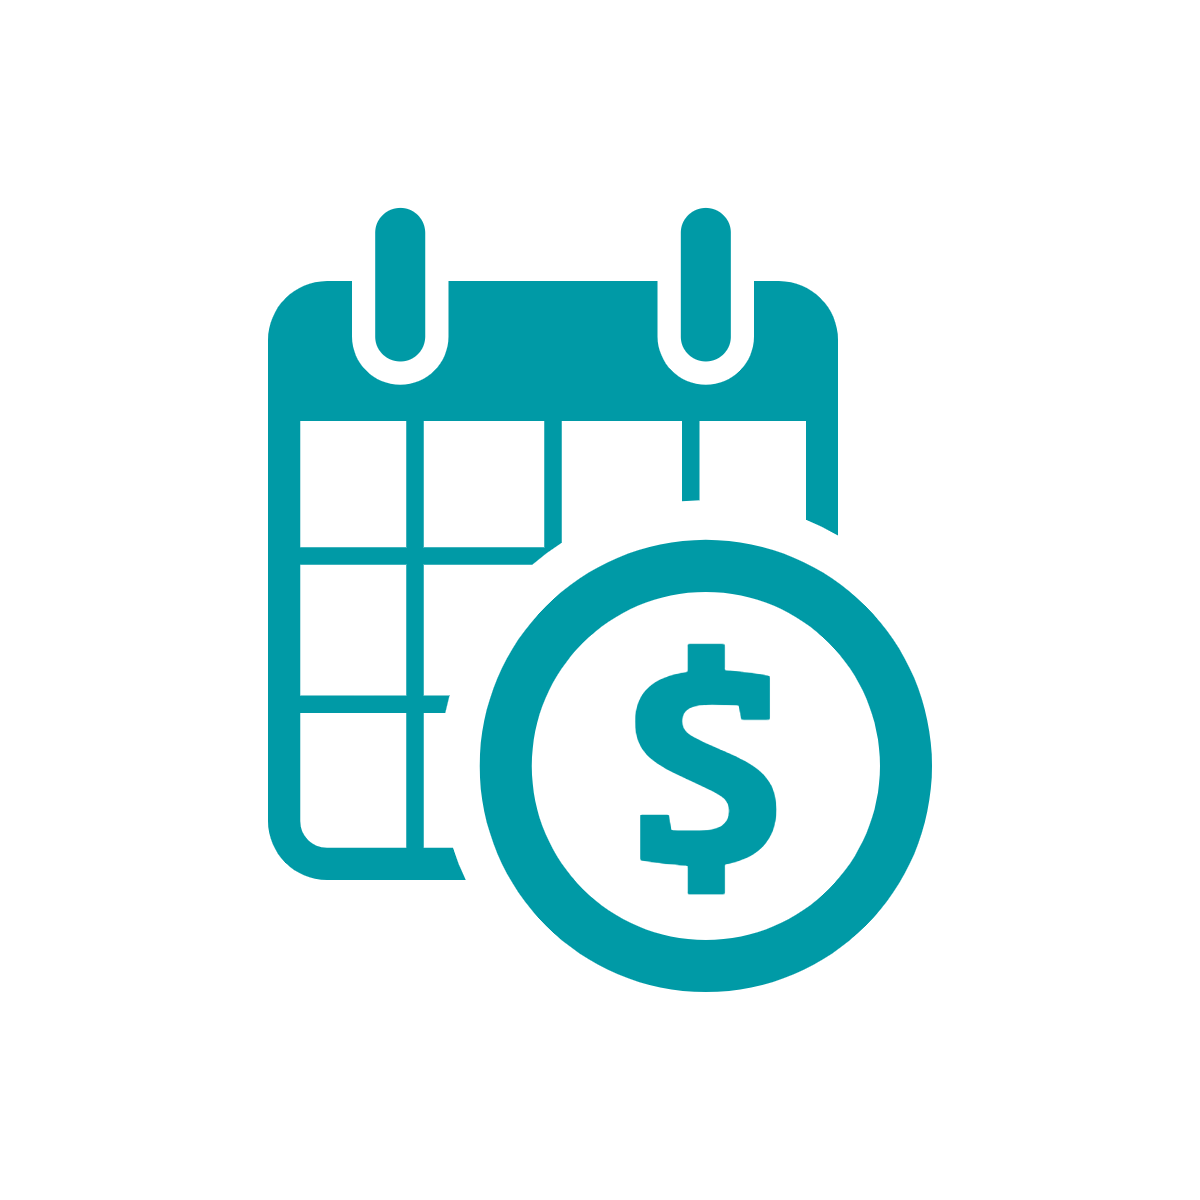 Fundraising Event Revenue Loan icon